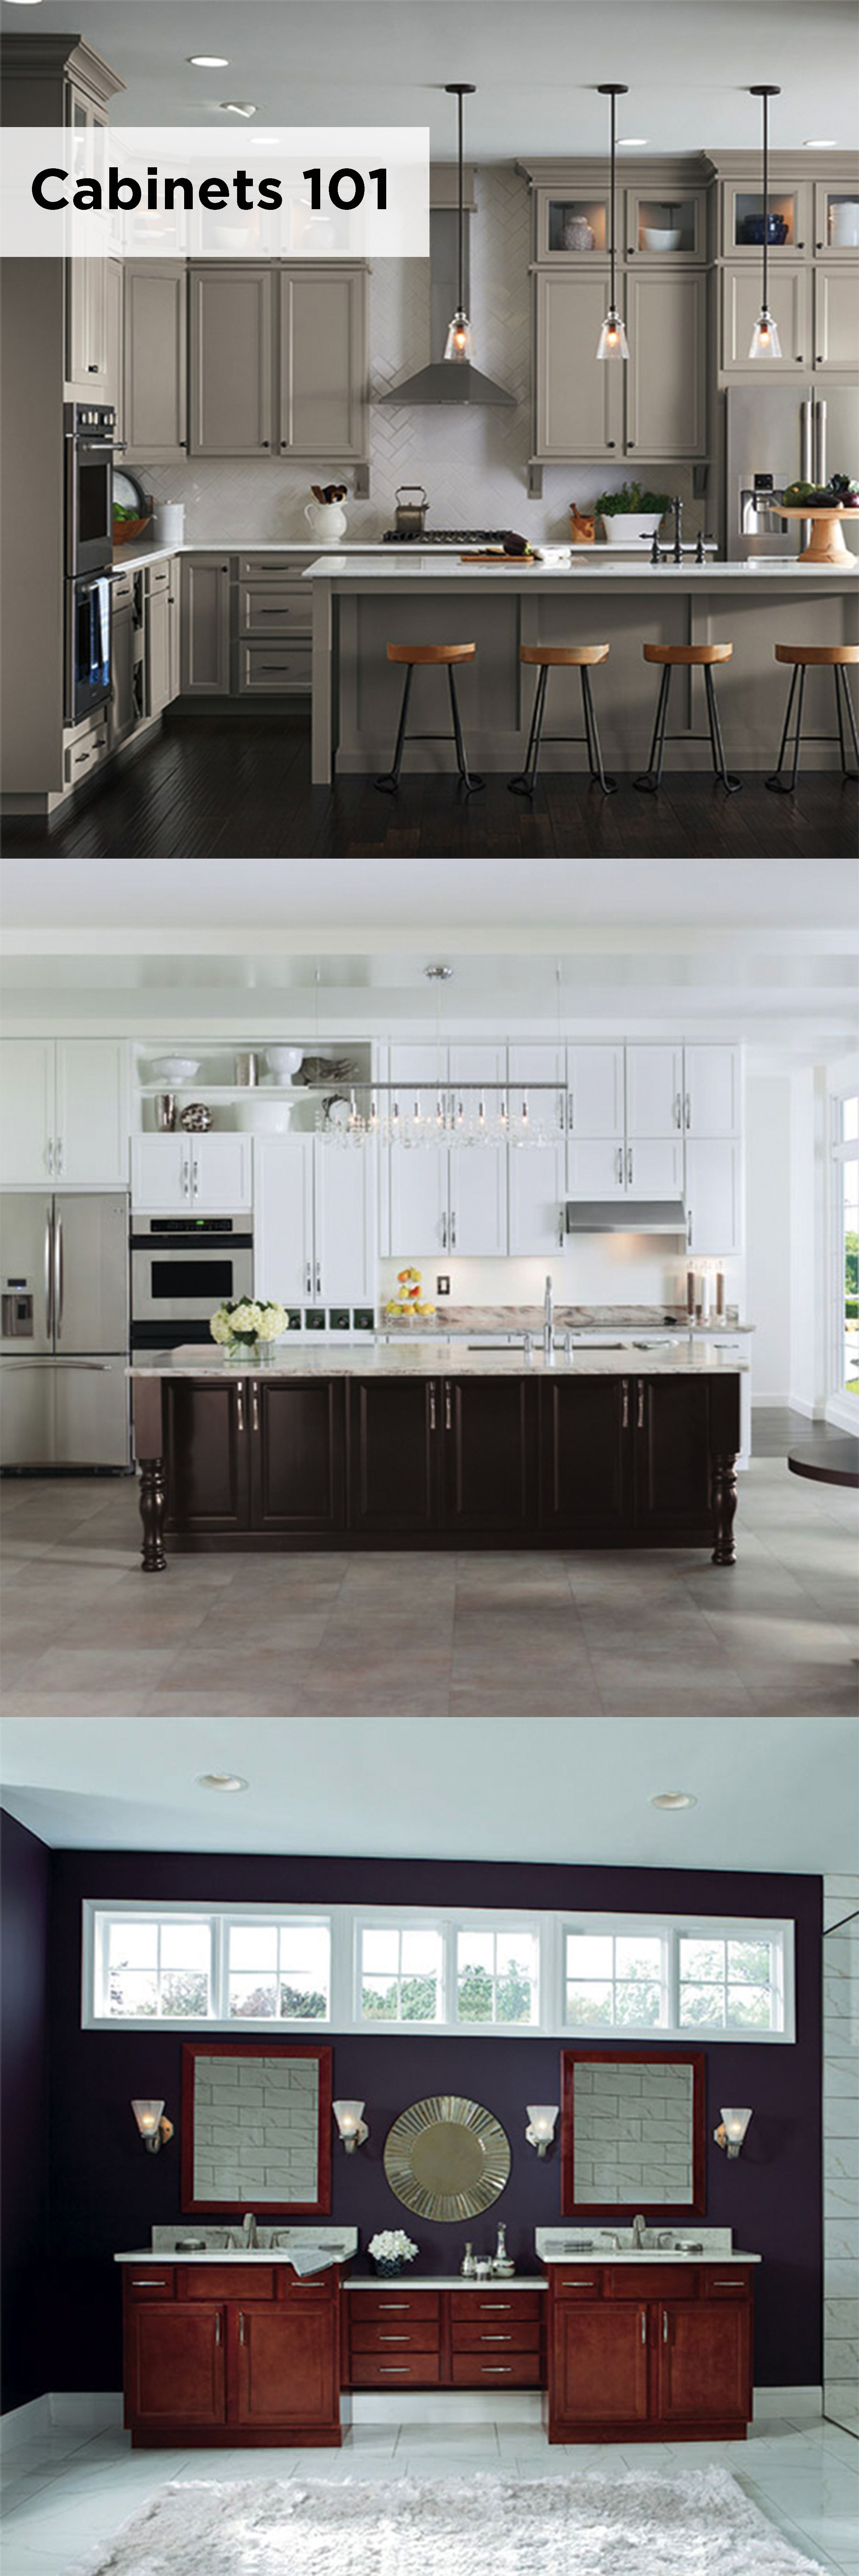 Cabinets 101 With Aristokraft Cabinetry Helps You Understand The Ins And Outs Of Cabinetry To Keep Your Choi Kitchen Remodel Small Kitchen Design Home Kitchens